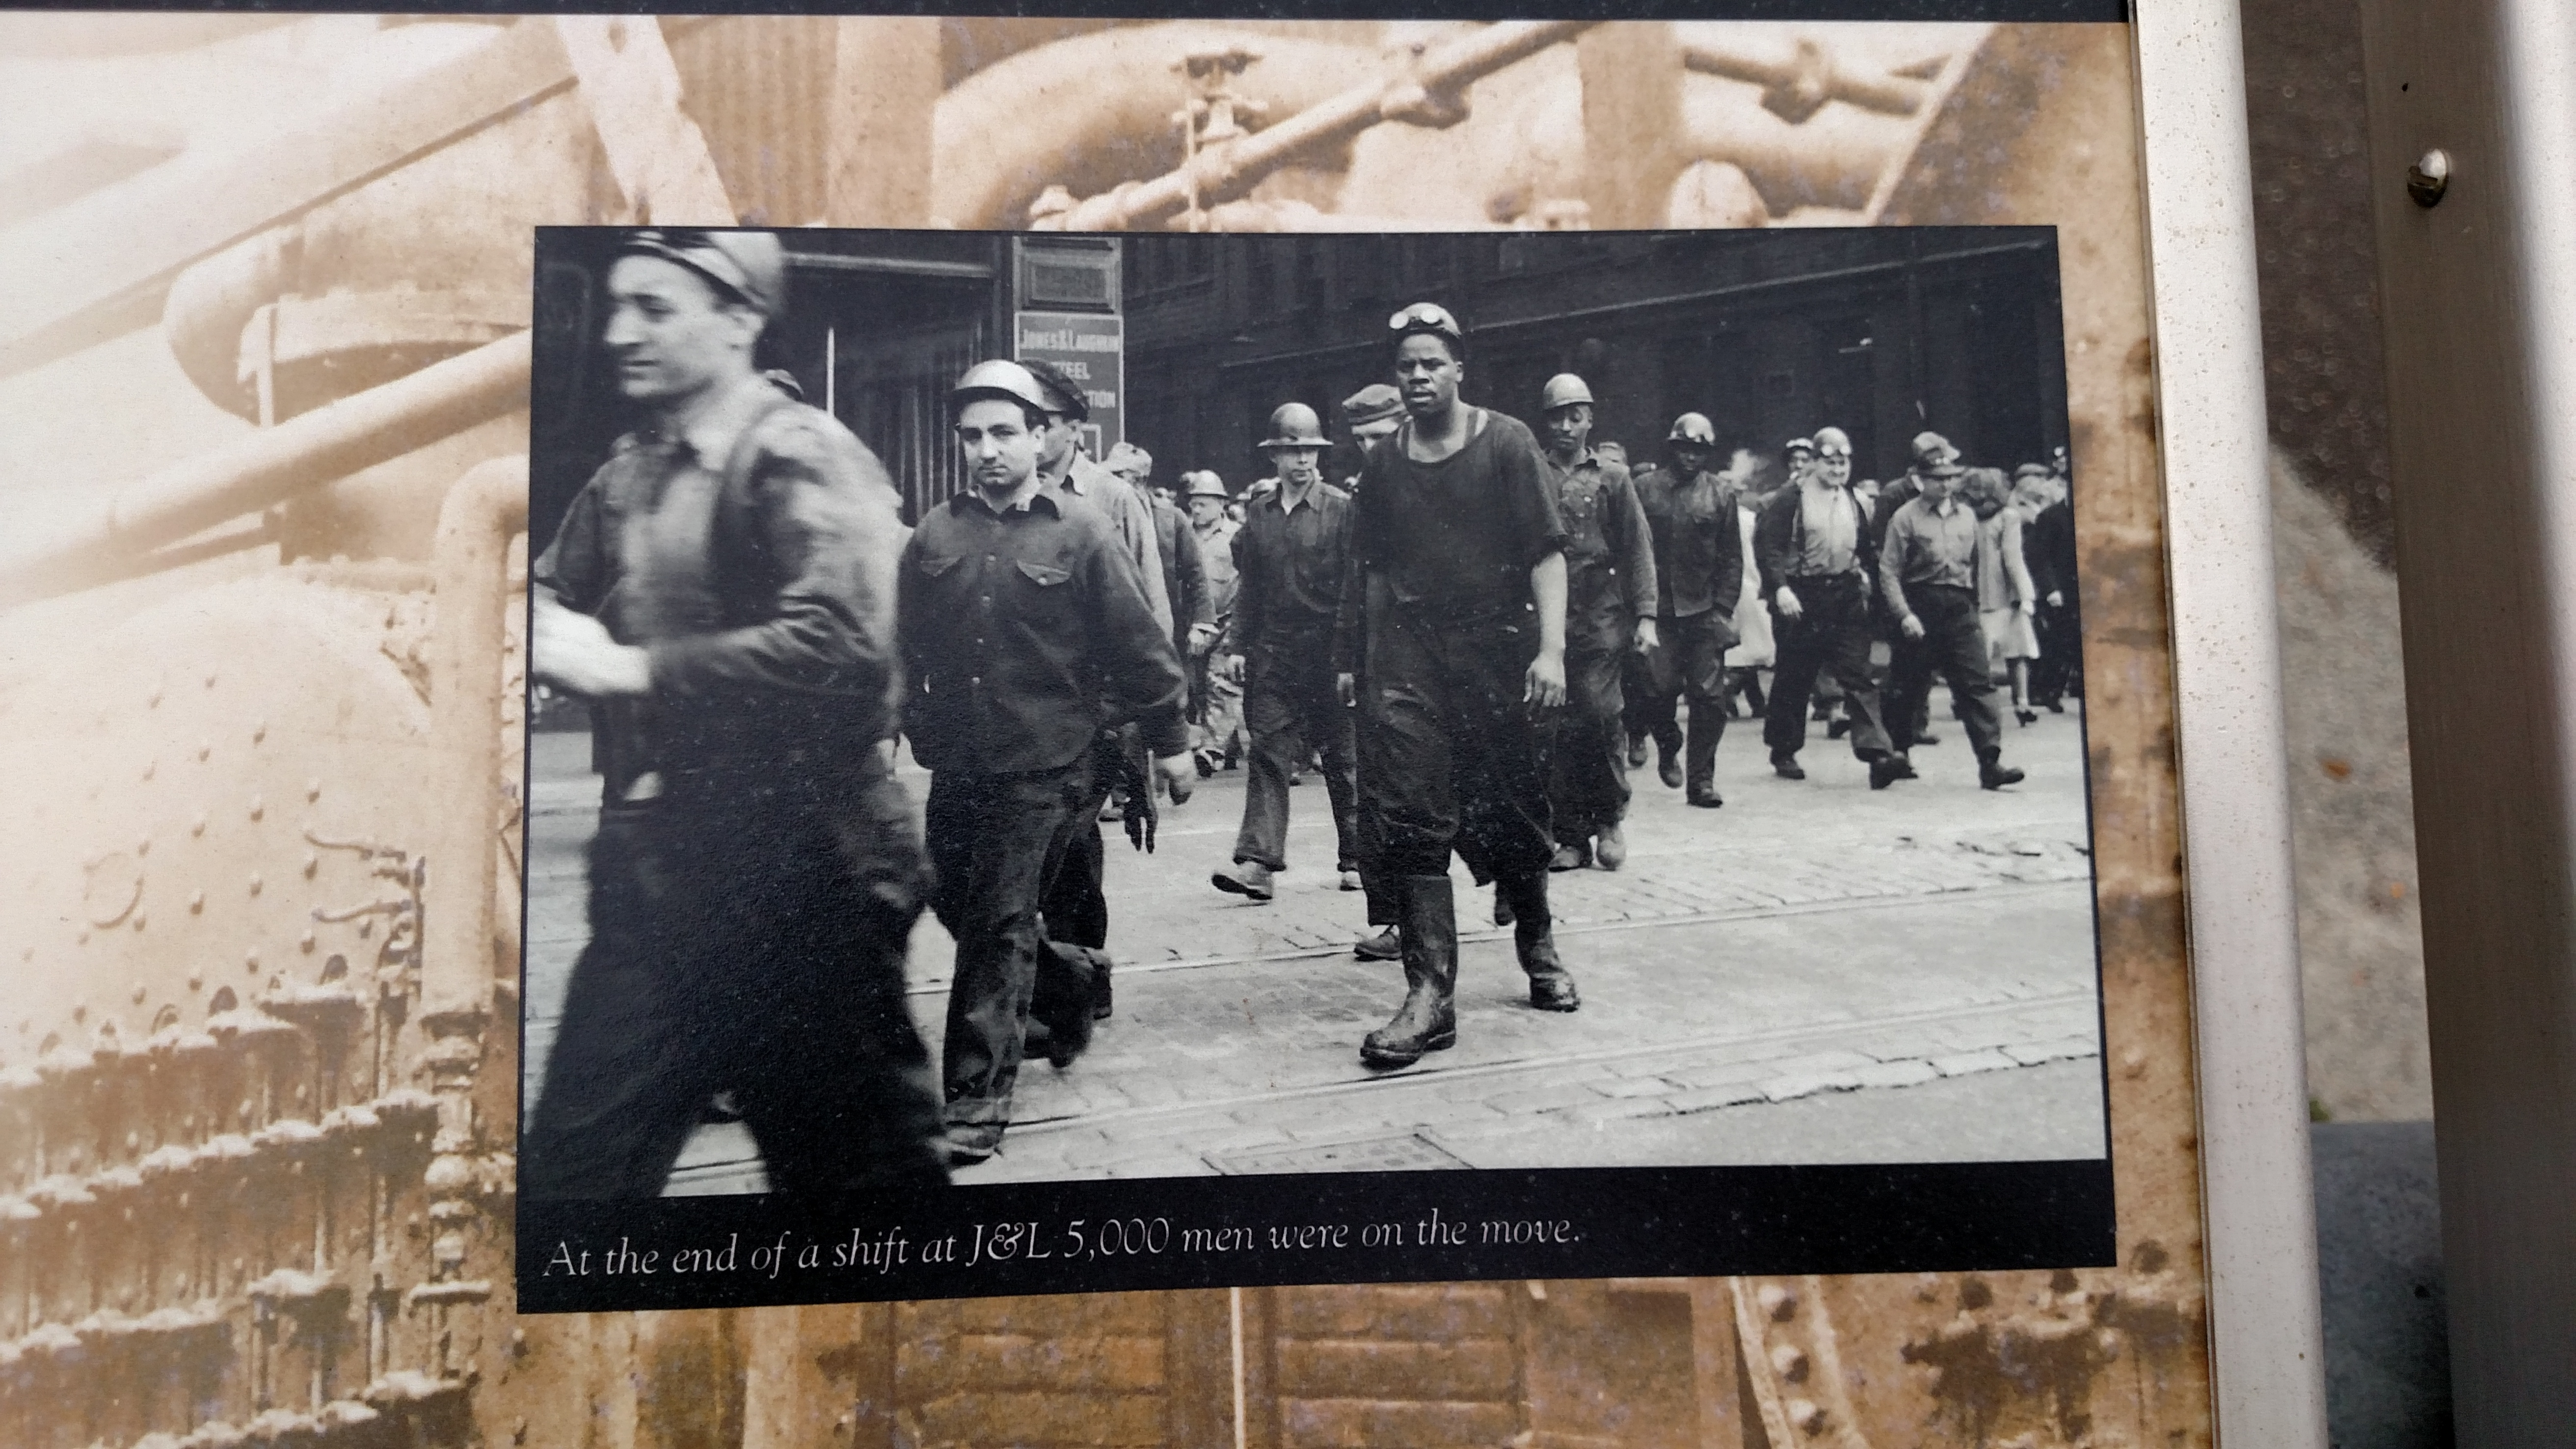 Iron and Steel Workers photo